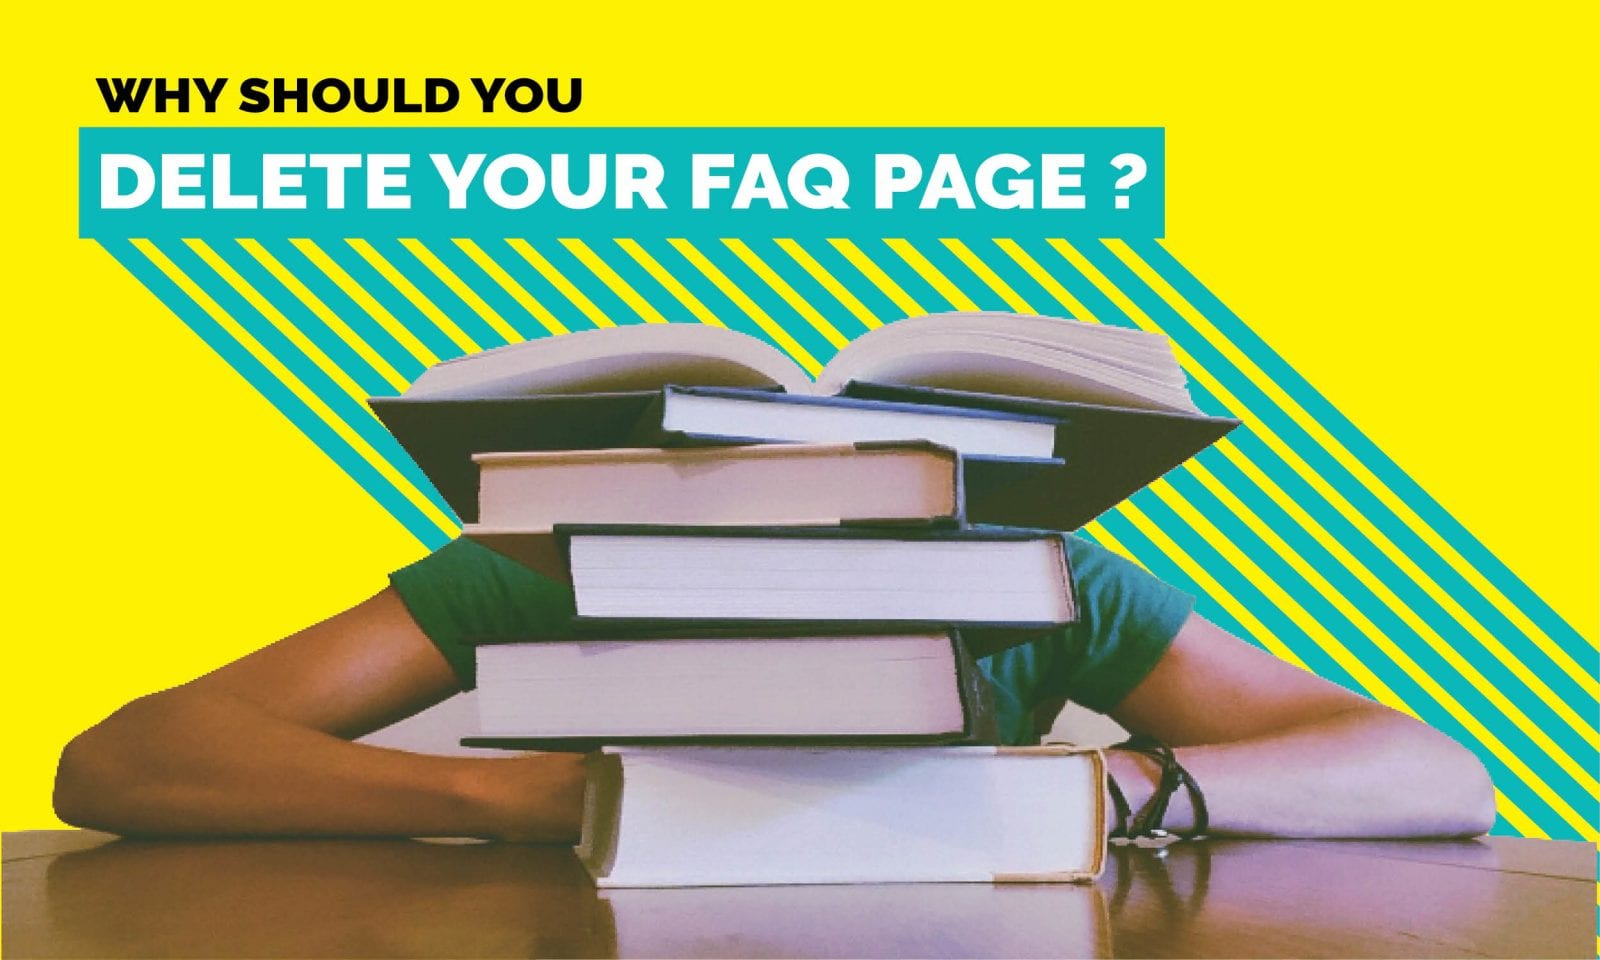 Why Should You Delete Your FAQ Page?